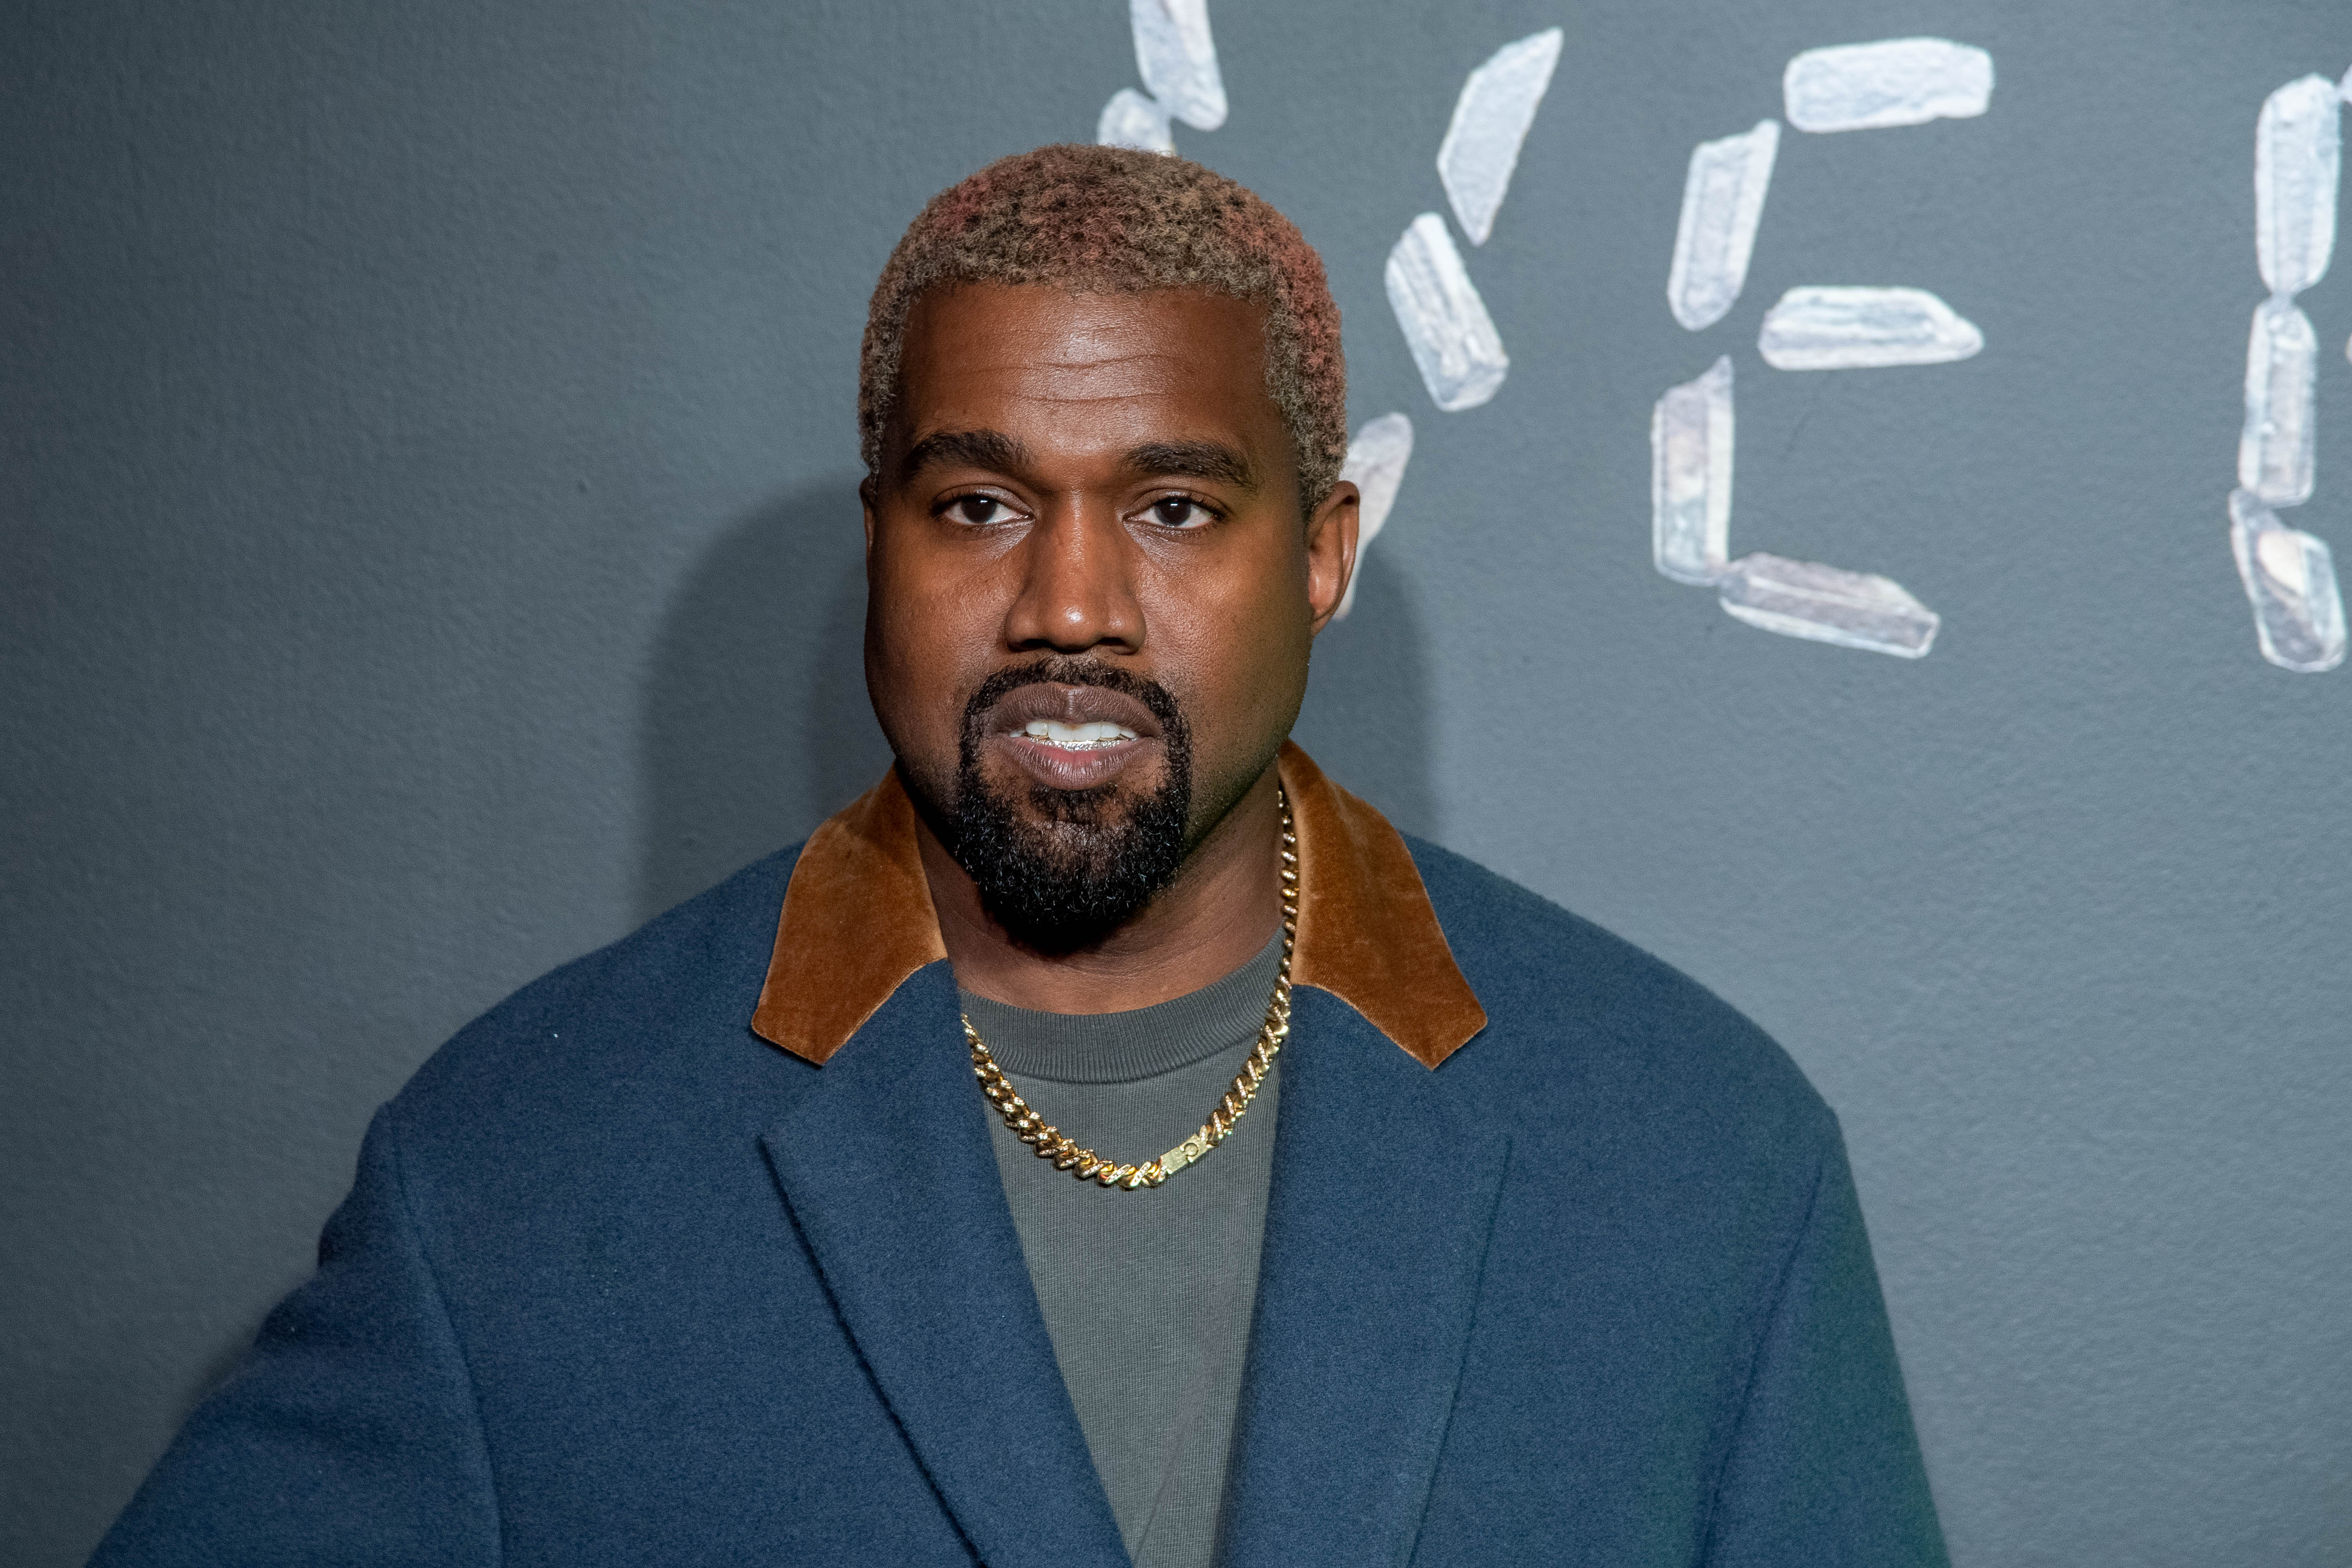 Kanye West's Family Reportedly Concerned He Is In Midst Of Serious Bipolar Episode